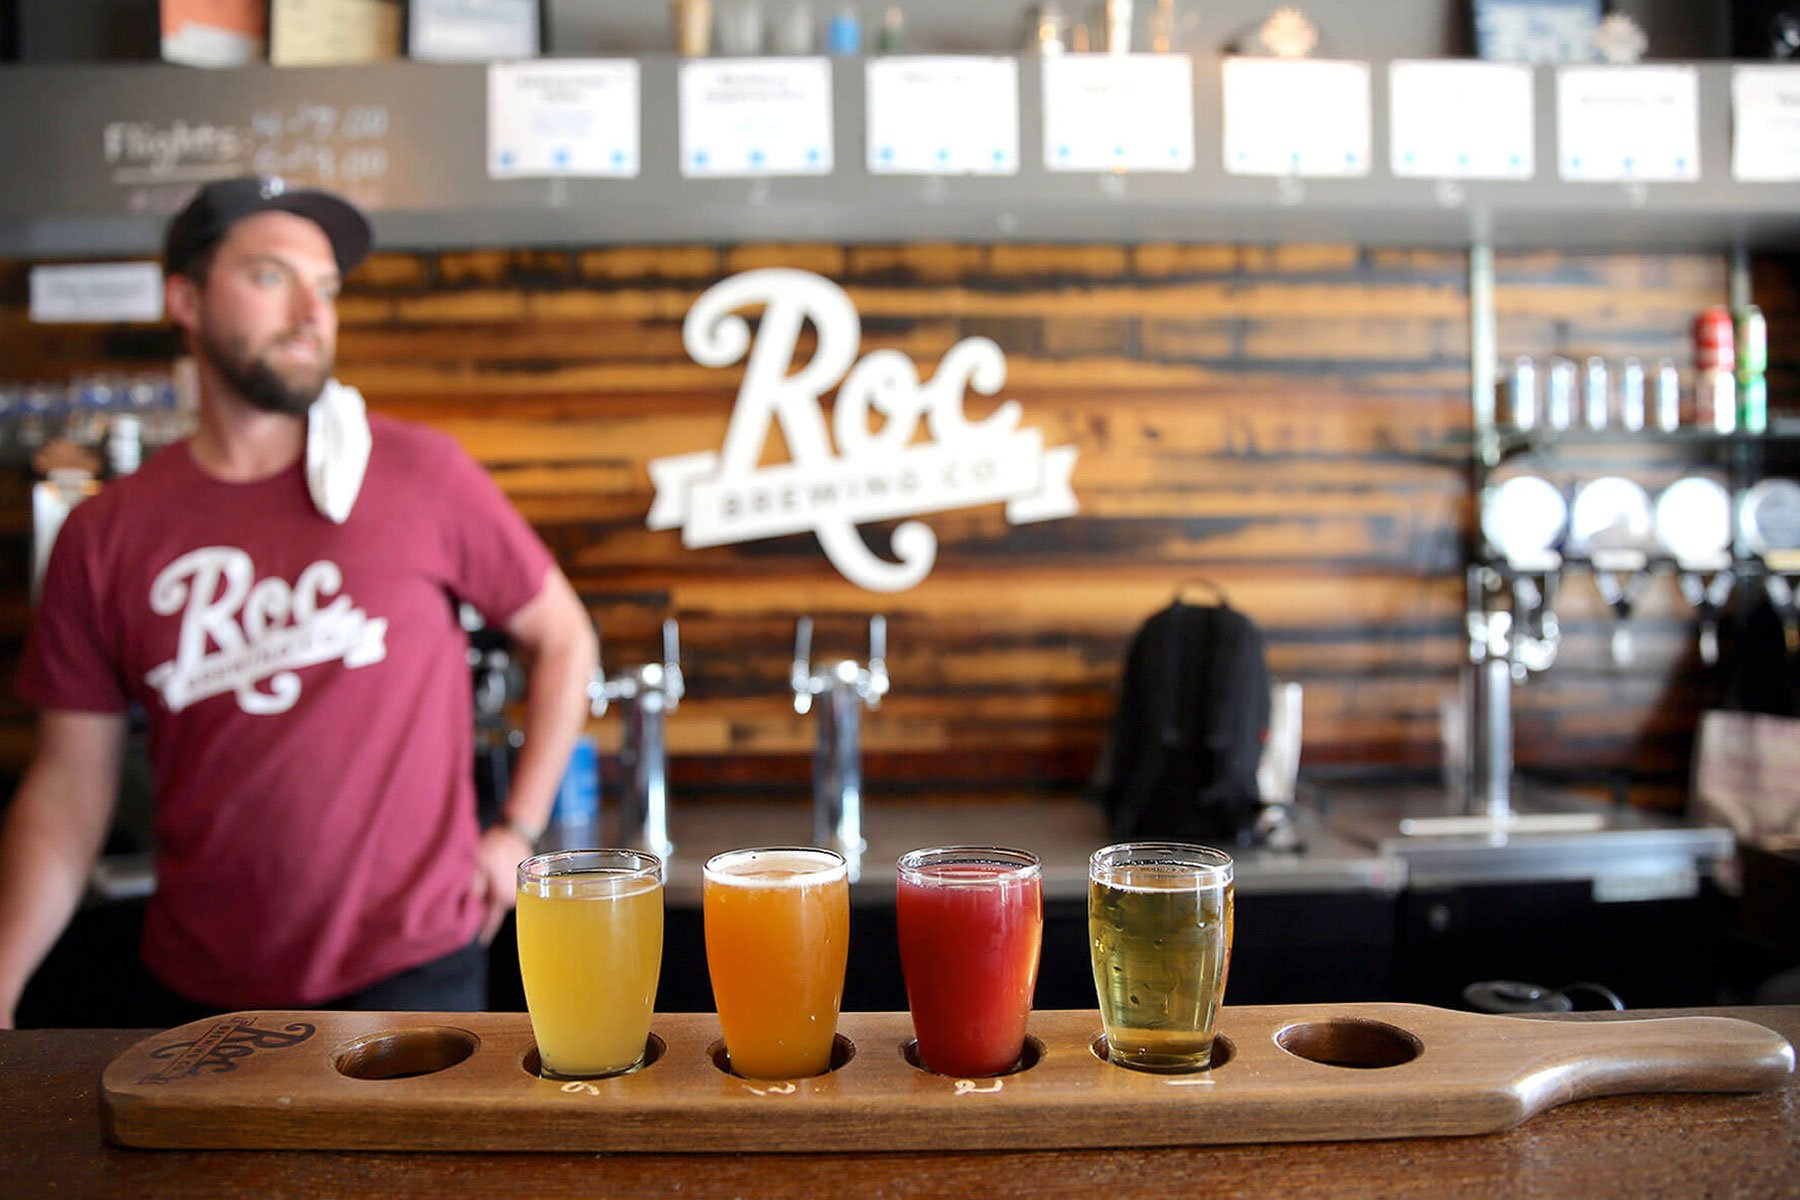 Inside the taproom at Roc Brewing Co. in Rochester, New York